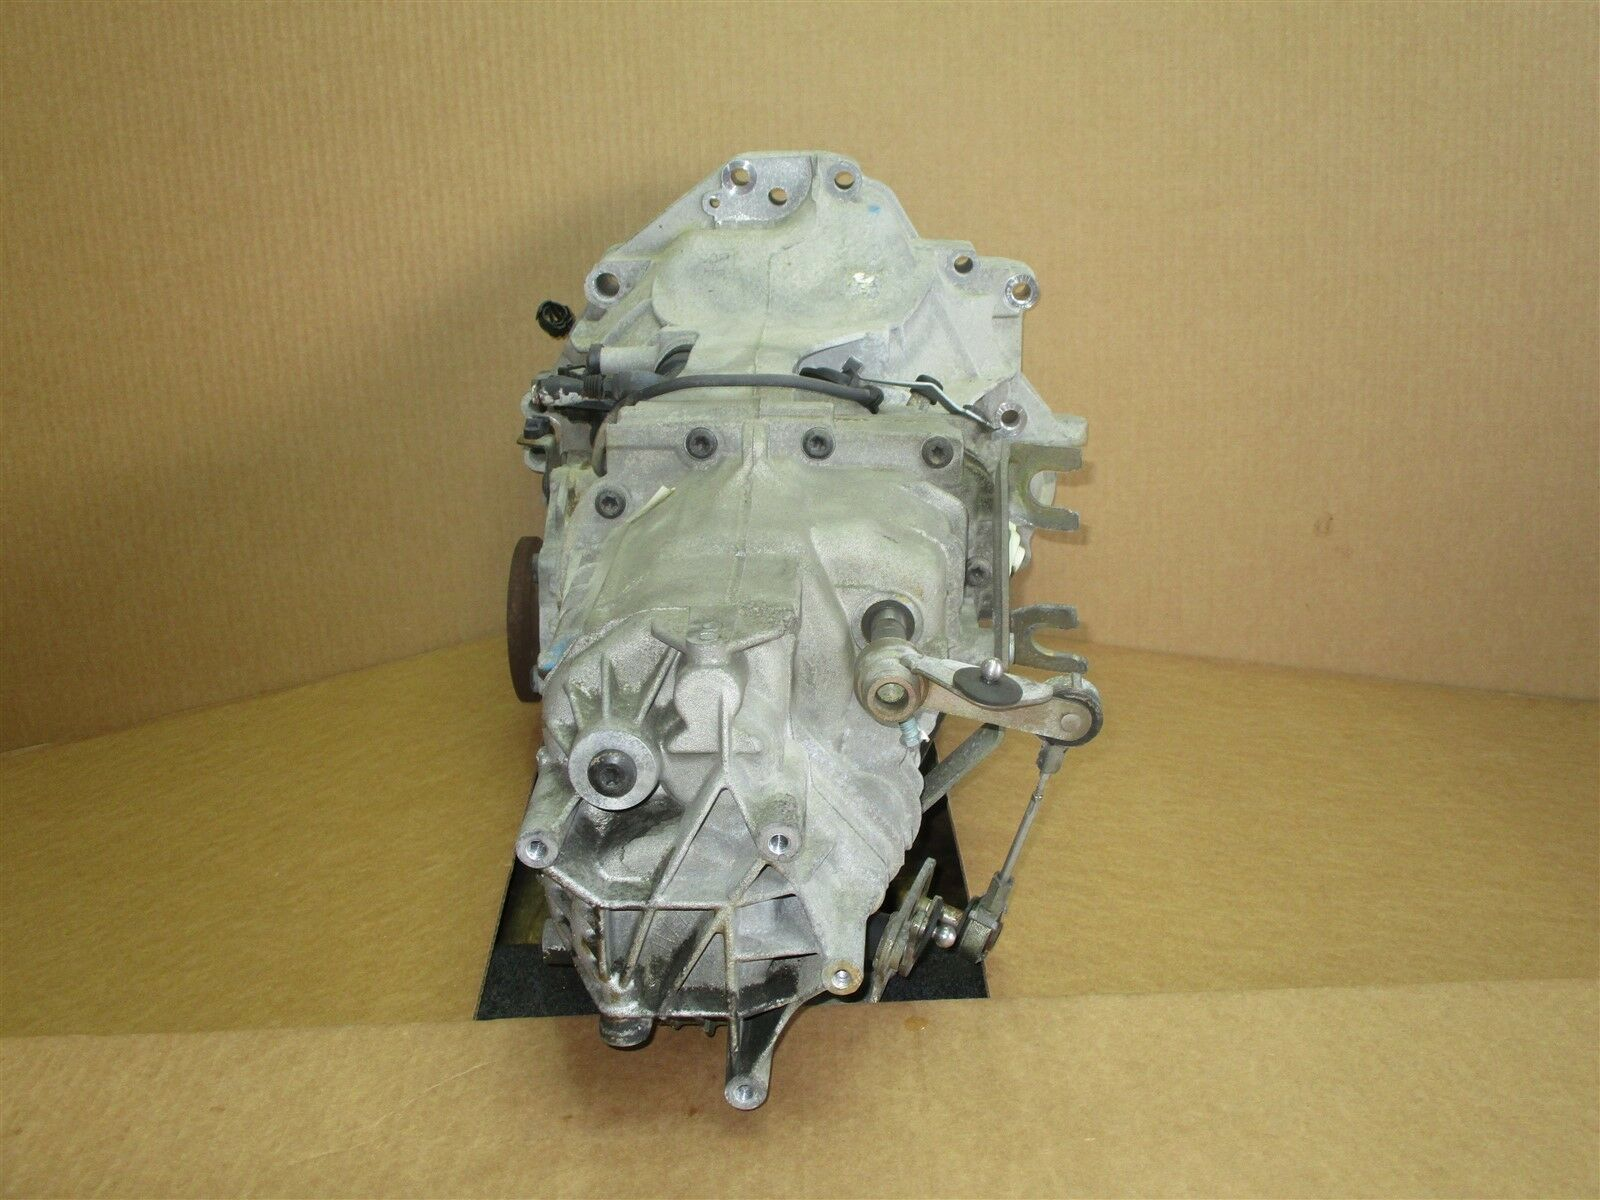 03 Boxster RWD Porsche 986 5 SPEED MANUAL TRANSMISSION GEAR BOX EFD0612 30,506